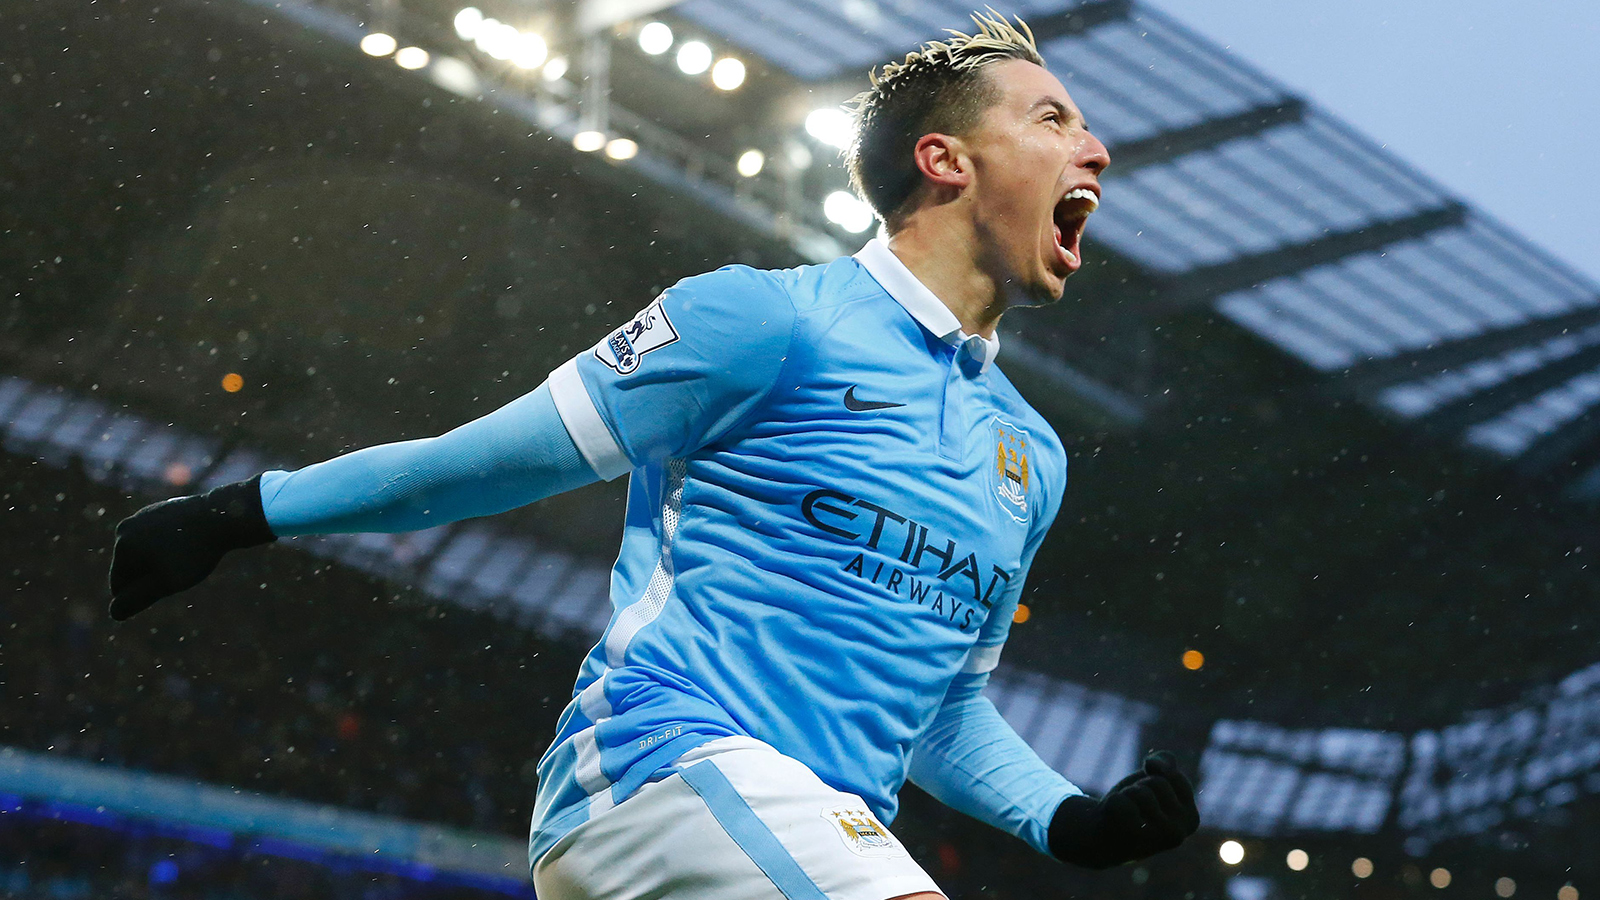 Man City rally to beat West Brom, stay 4th in Premier League